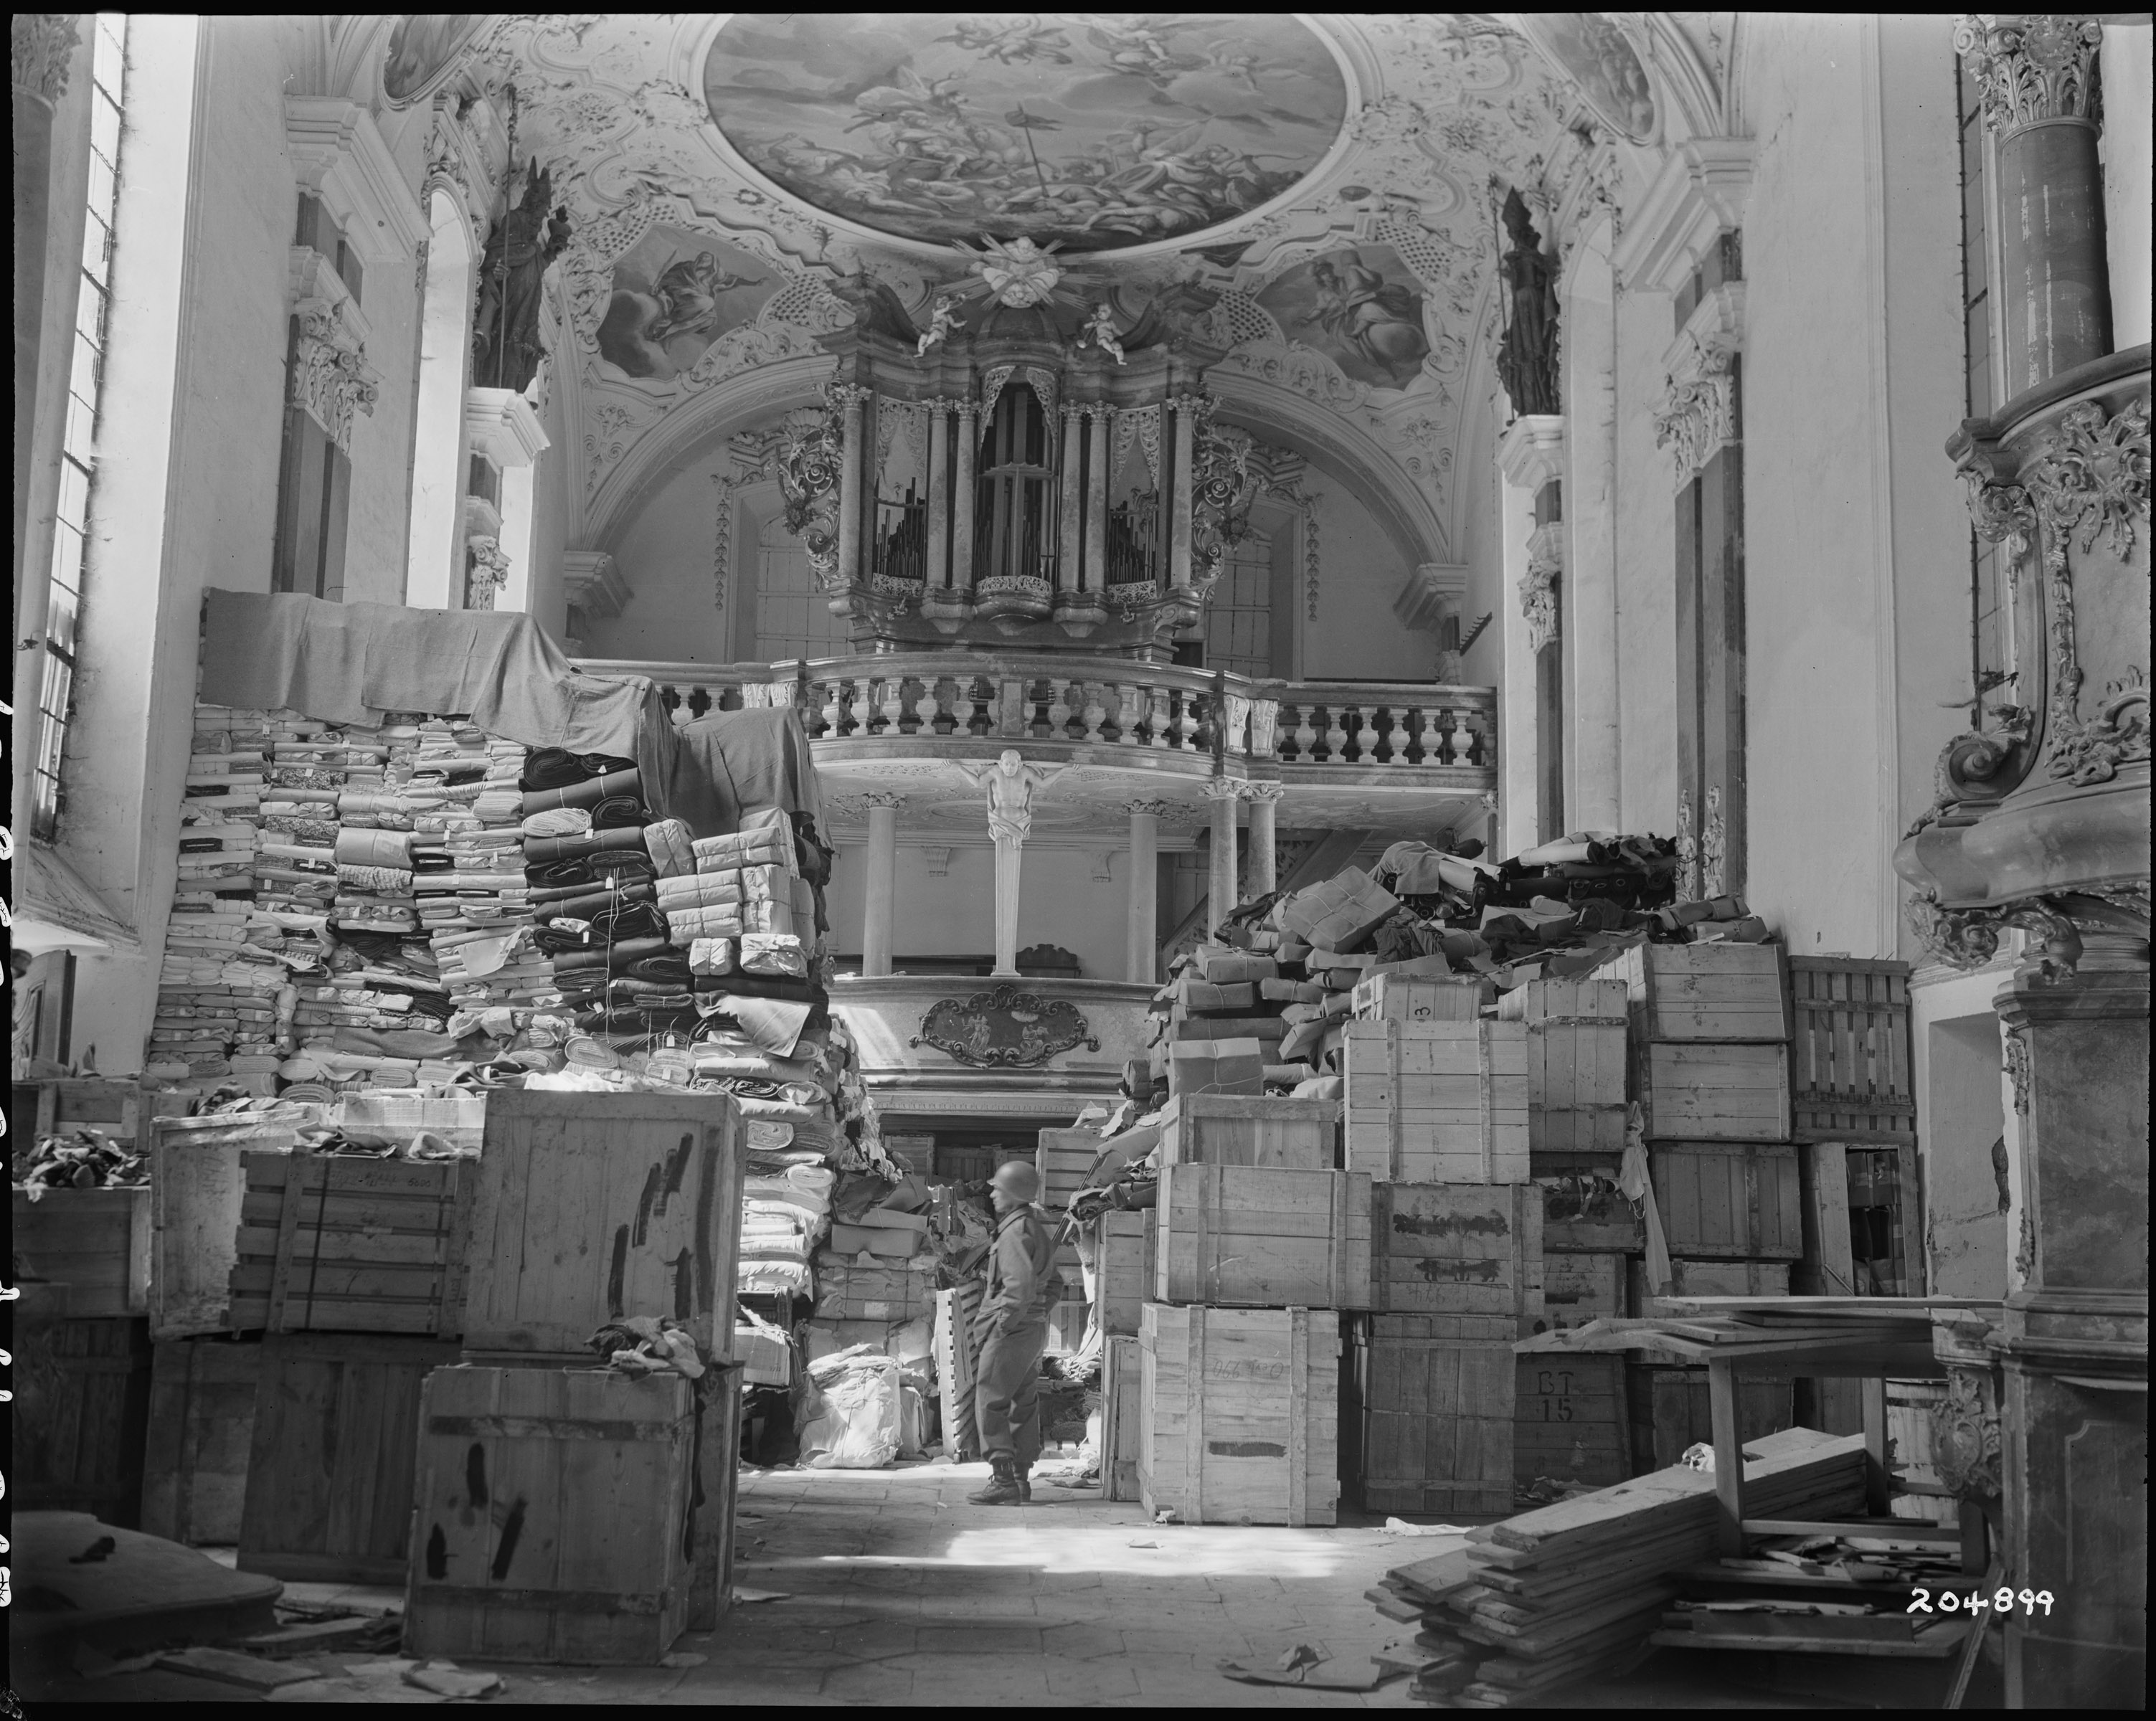 German loot stored in church at Ellingen, Germany found by troops of the U.S. Third Army. 4/24/45. National Archives RG 111-SC-204899.